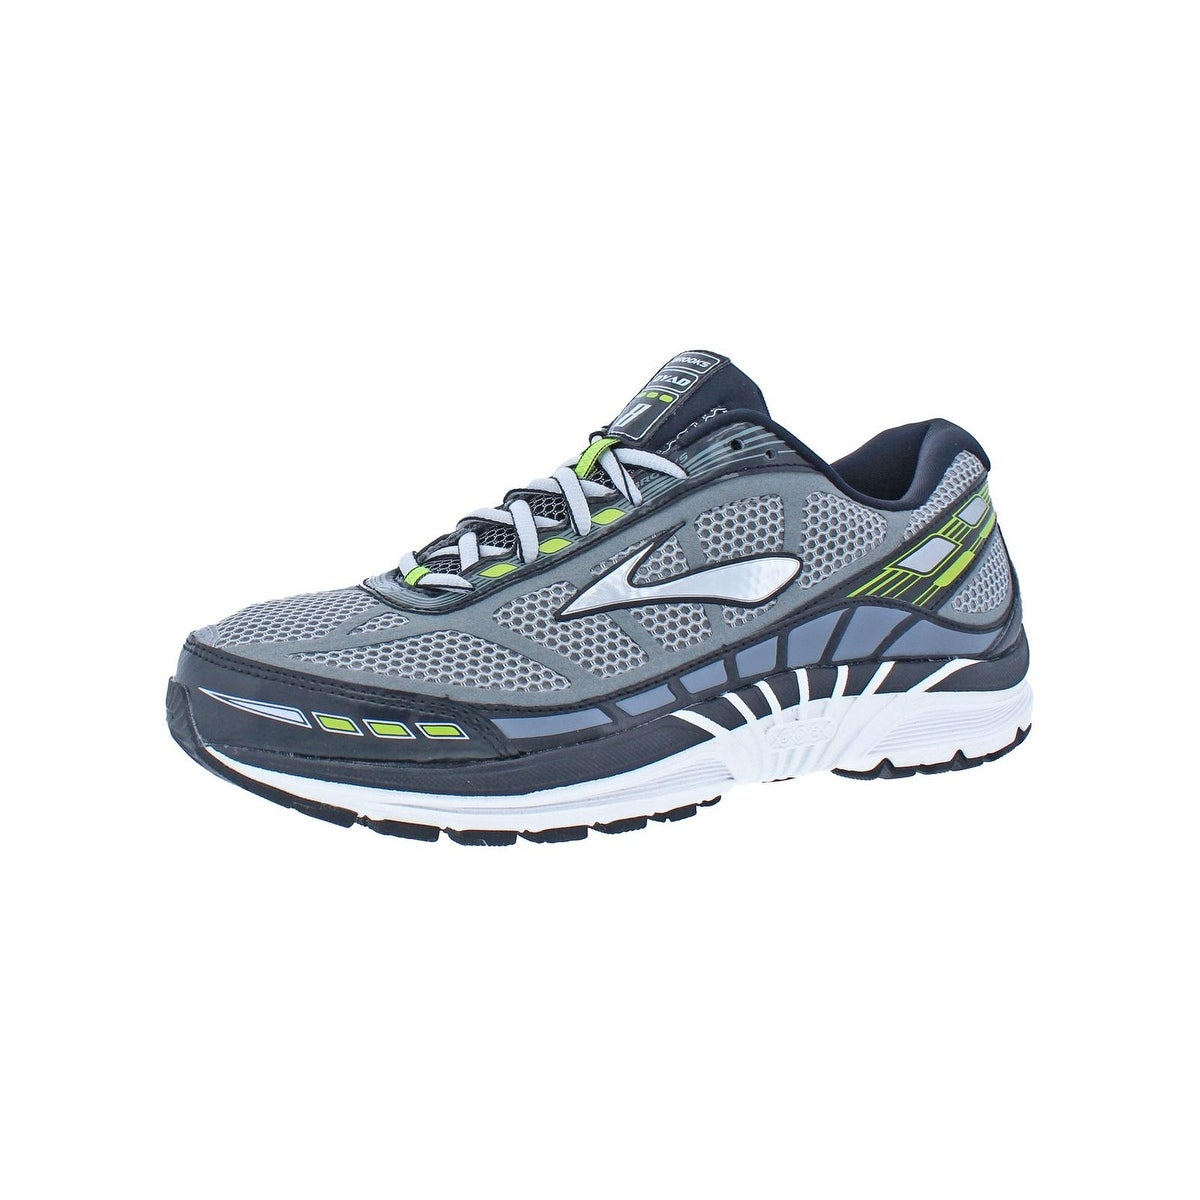 07f2389d220 Shop Brooks Mens Dyad 8 Running Shoes Running Lightweight - 8 extra wide  (4e) - Free Shipping Today - Overstock - 22581426